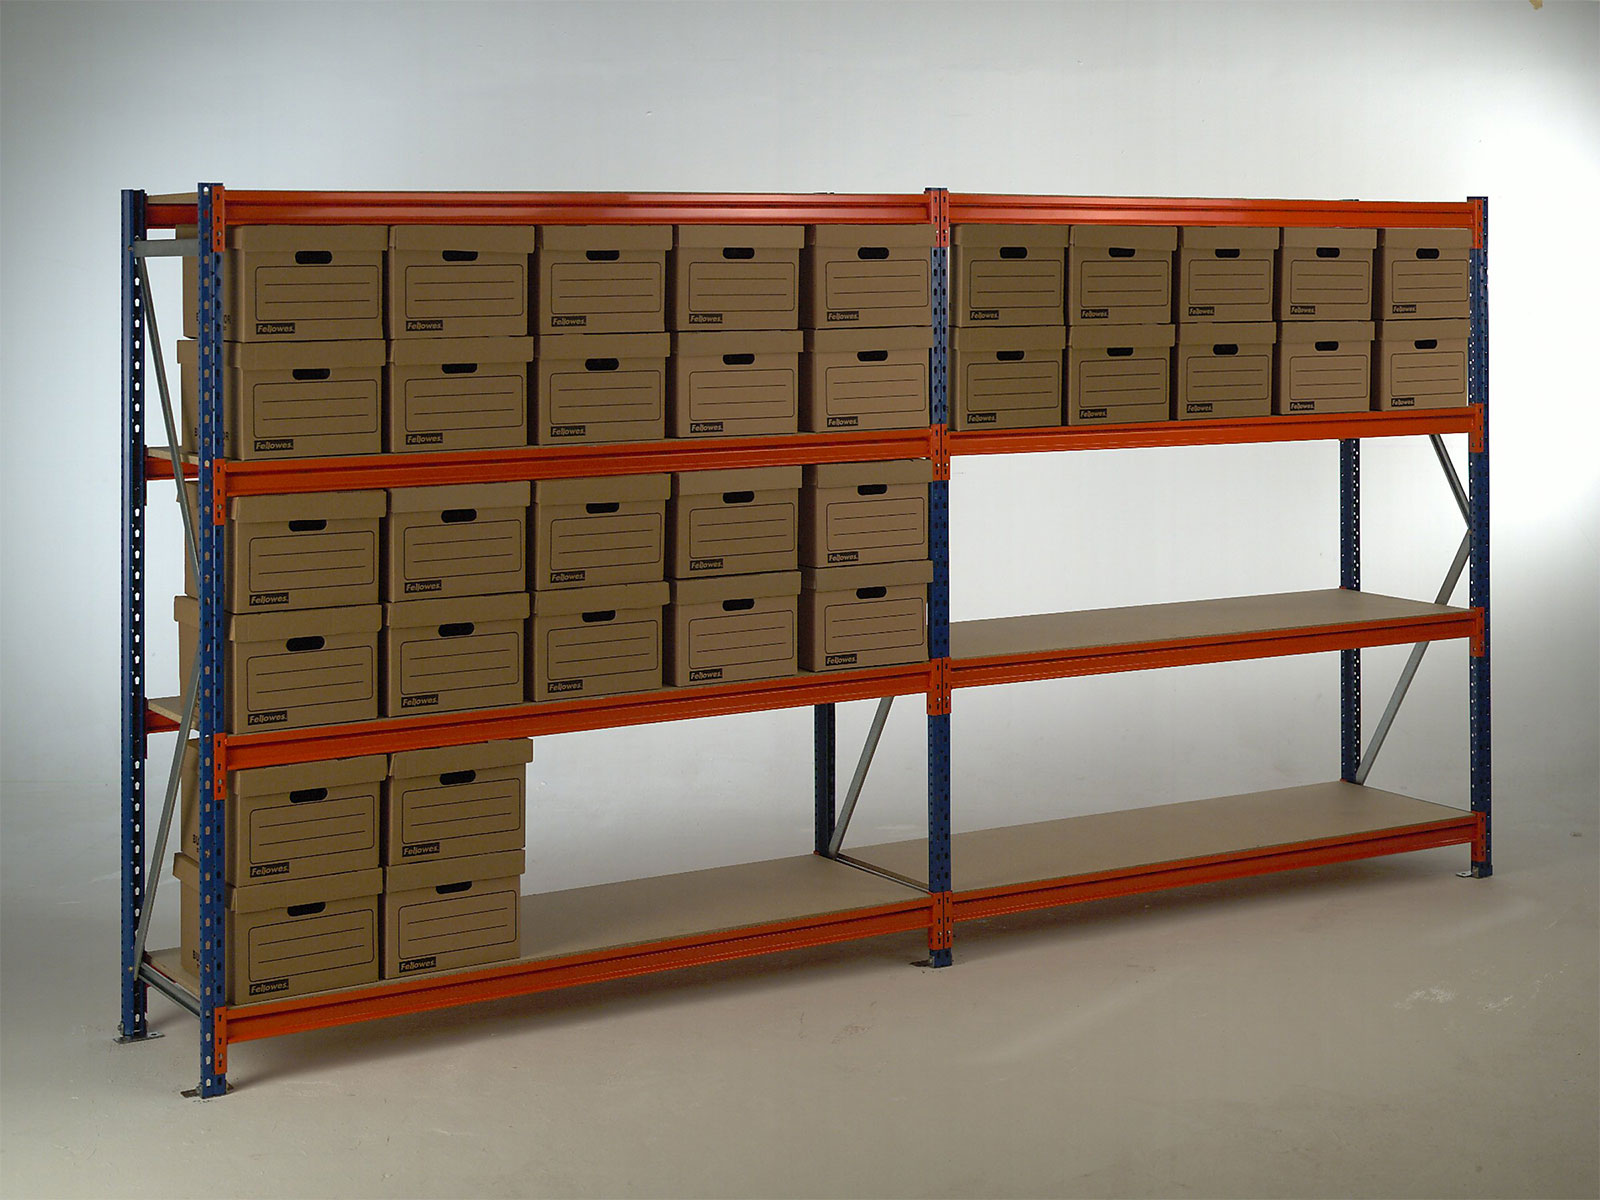 Long Span Shelving in use